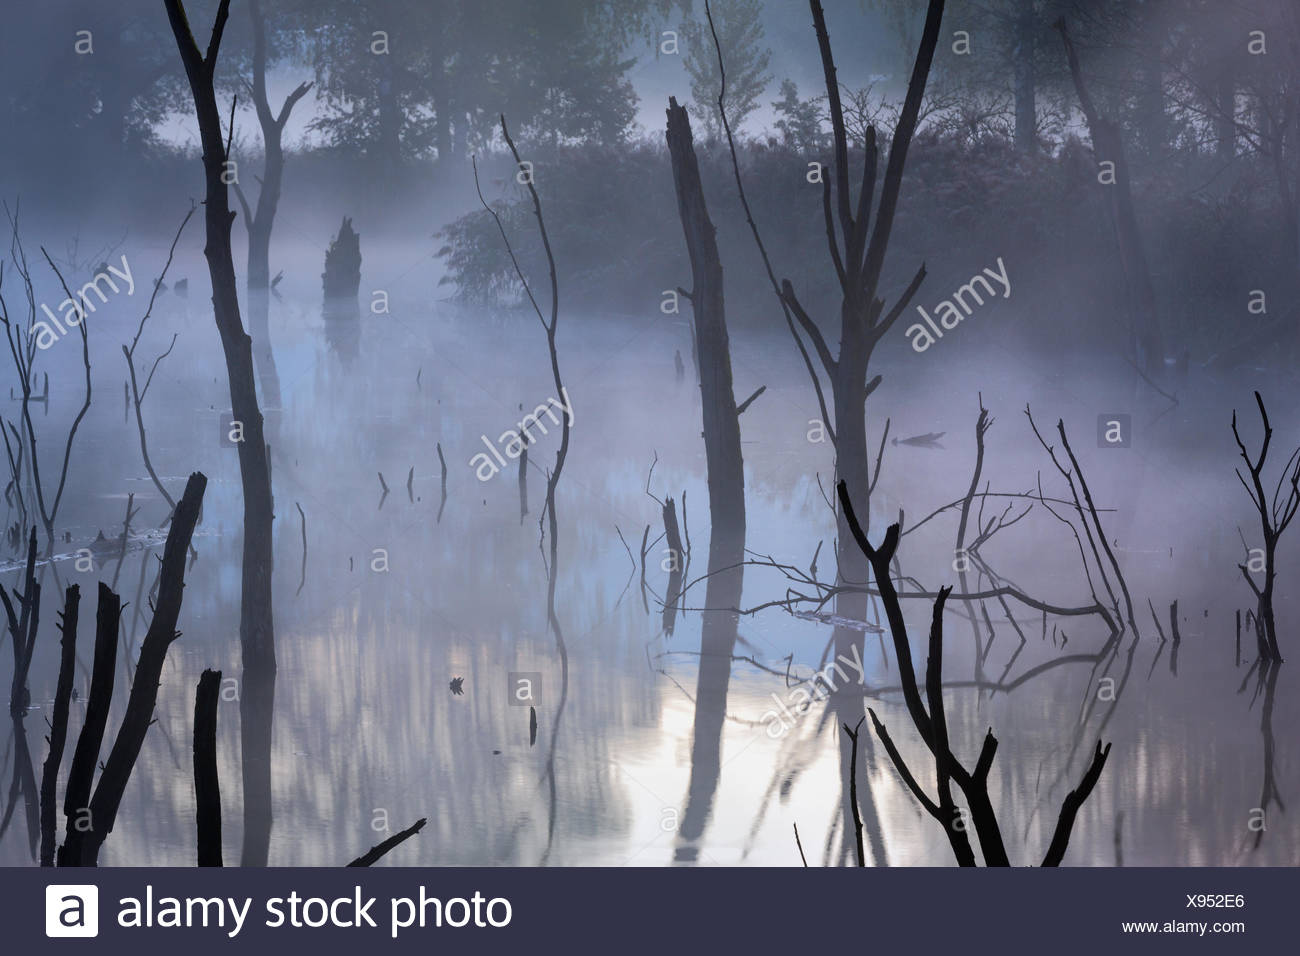 Oberriet, pit, Loo, Switzerland, Europe, canton St. Gallen, Rhine Valley, former, clay pit, dead wood, dead trees, reflection, m - Stock Image